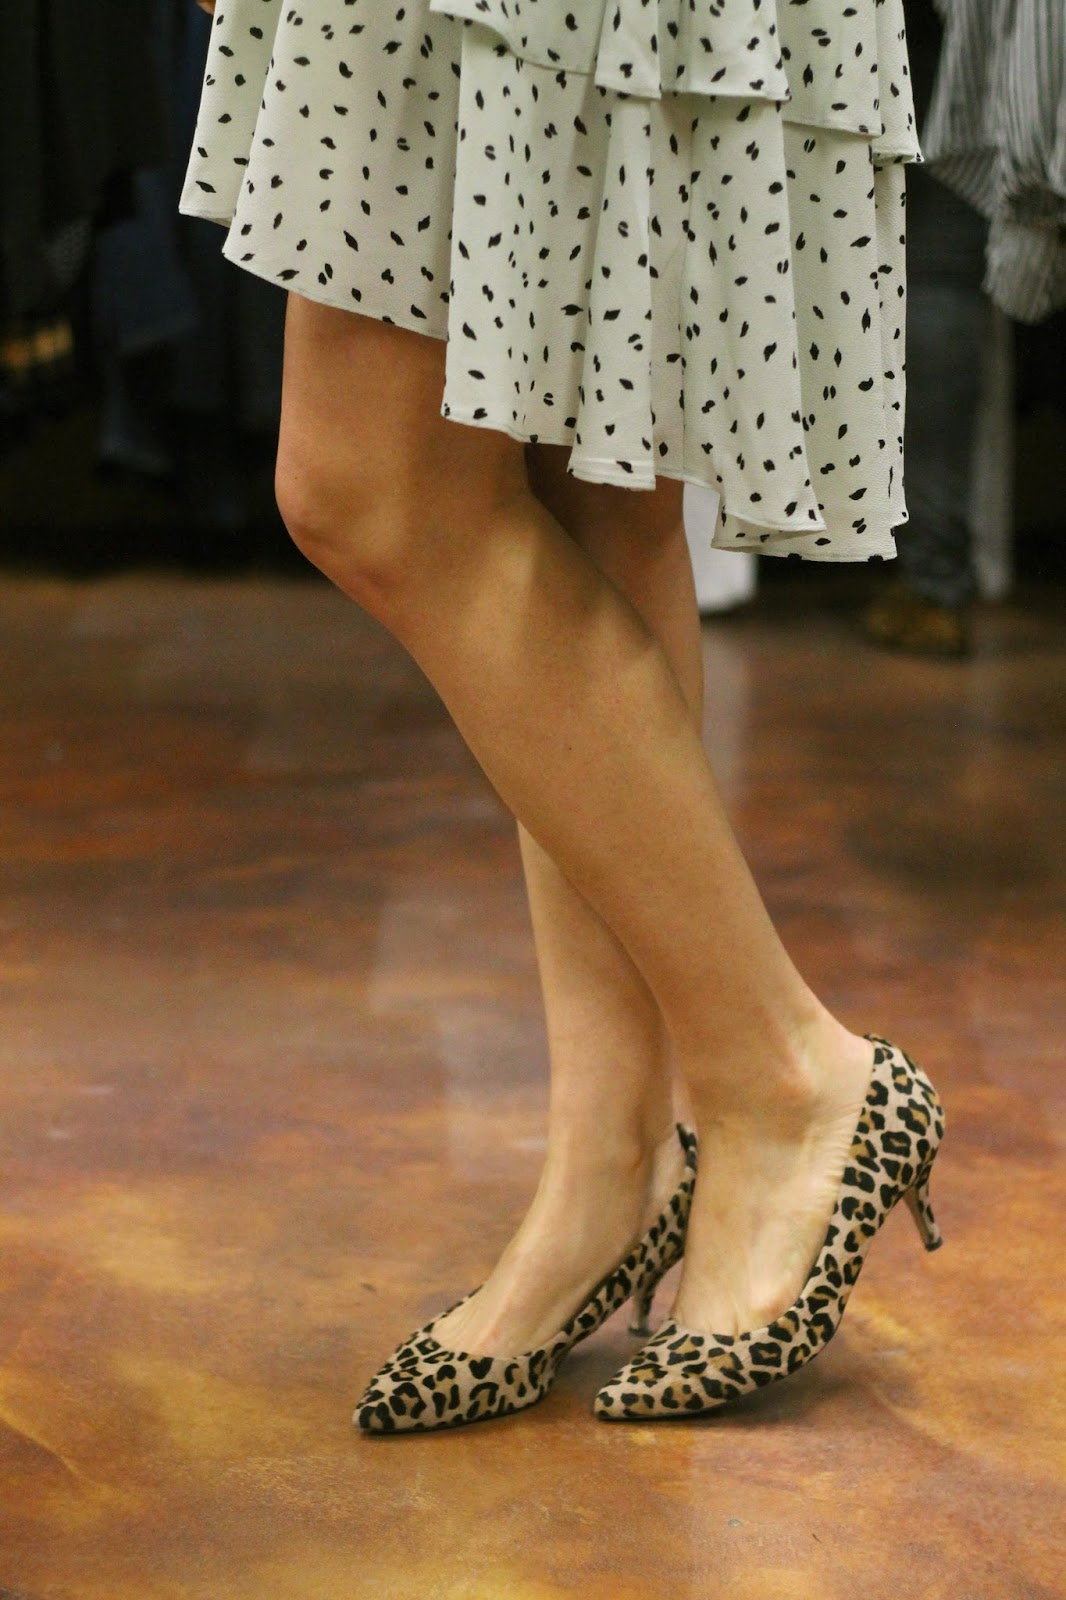 crossroads, trading, co, cheetah, pumps, heels